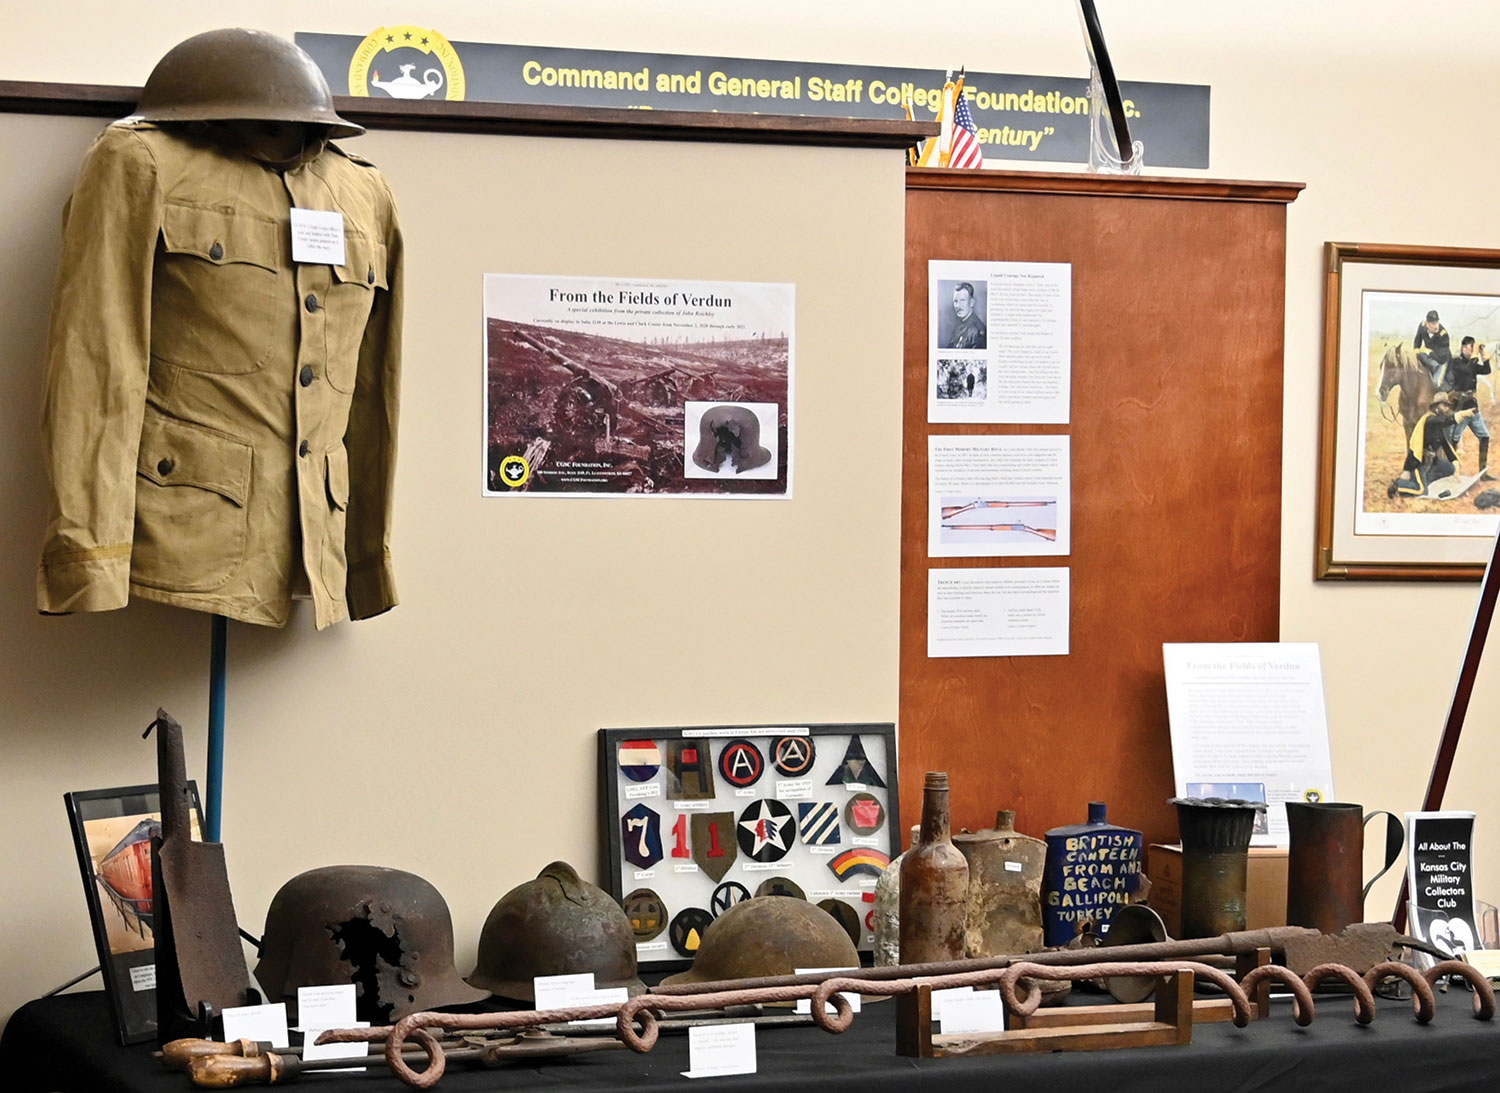 photo of the World War I display in the CGSC Foundation gift shop.